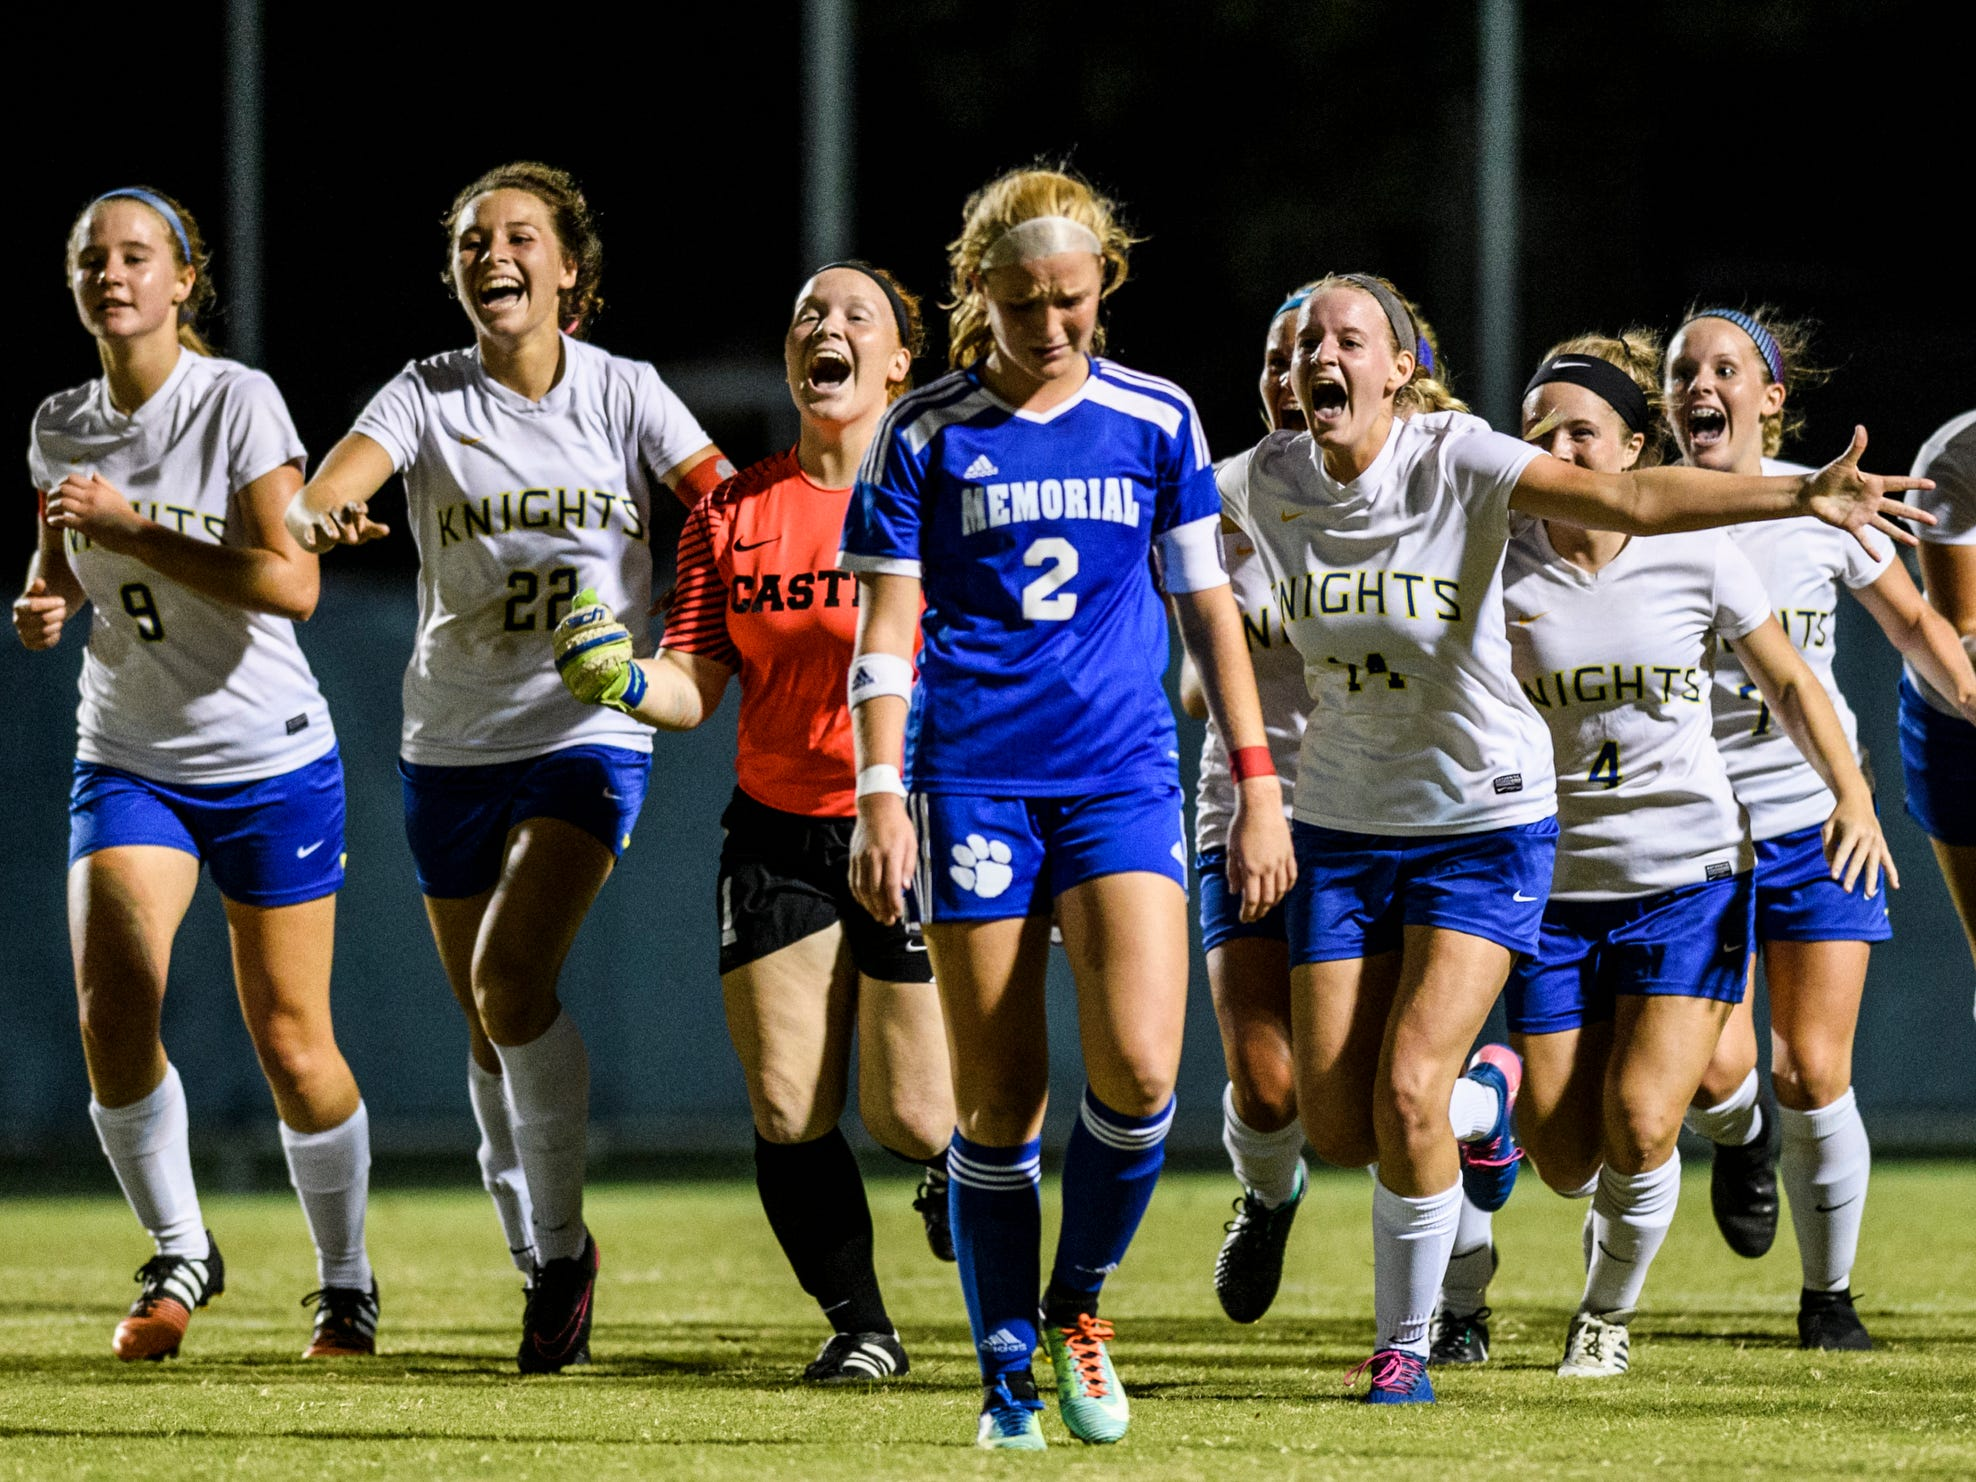 The Castle Knights celebrate their victory as the game clock runs out and Memorial's Isabel Alexander (2) walks back to her team at Traylor Family Stadium in Evansville, Ind., Tuesday, Sept. 11, 2018. The Knights remain undefeated after a 2-1 victory over the Tigers.